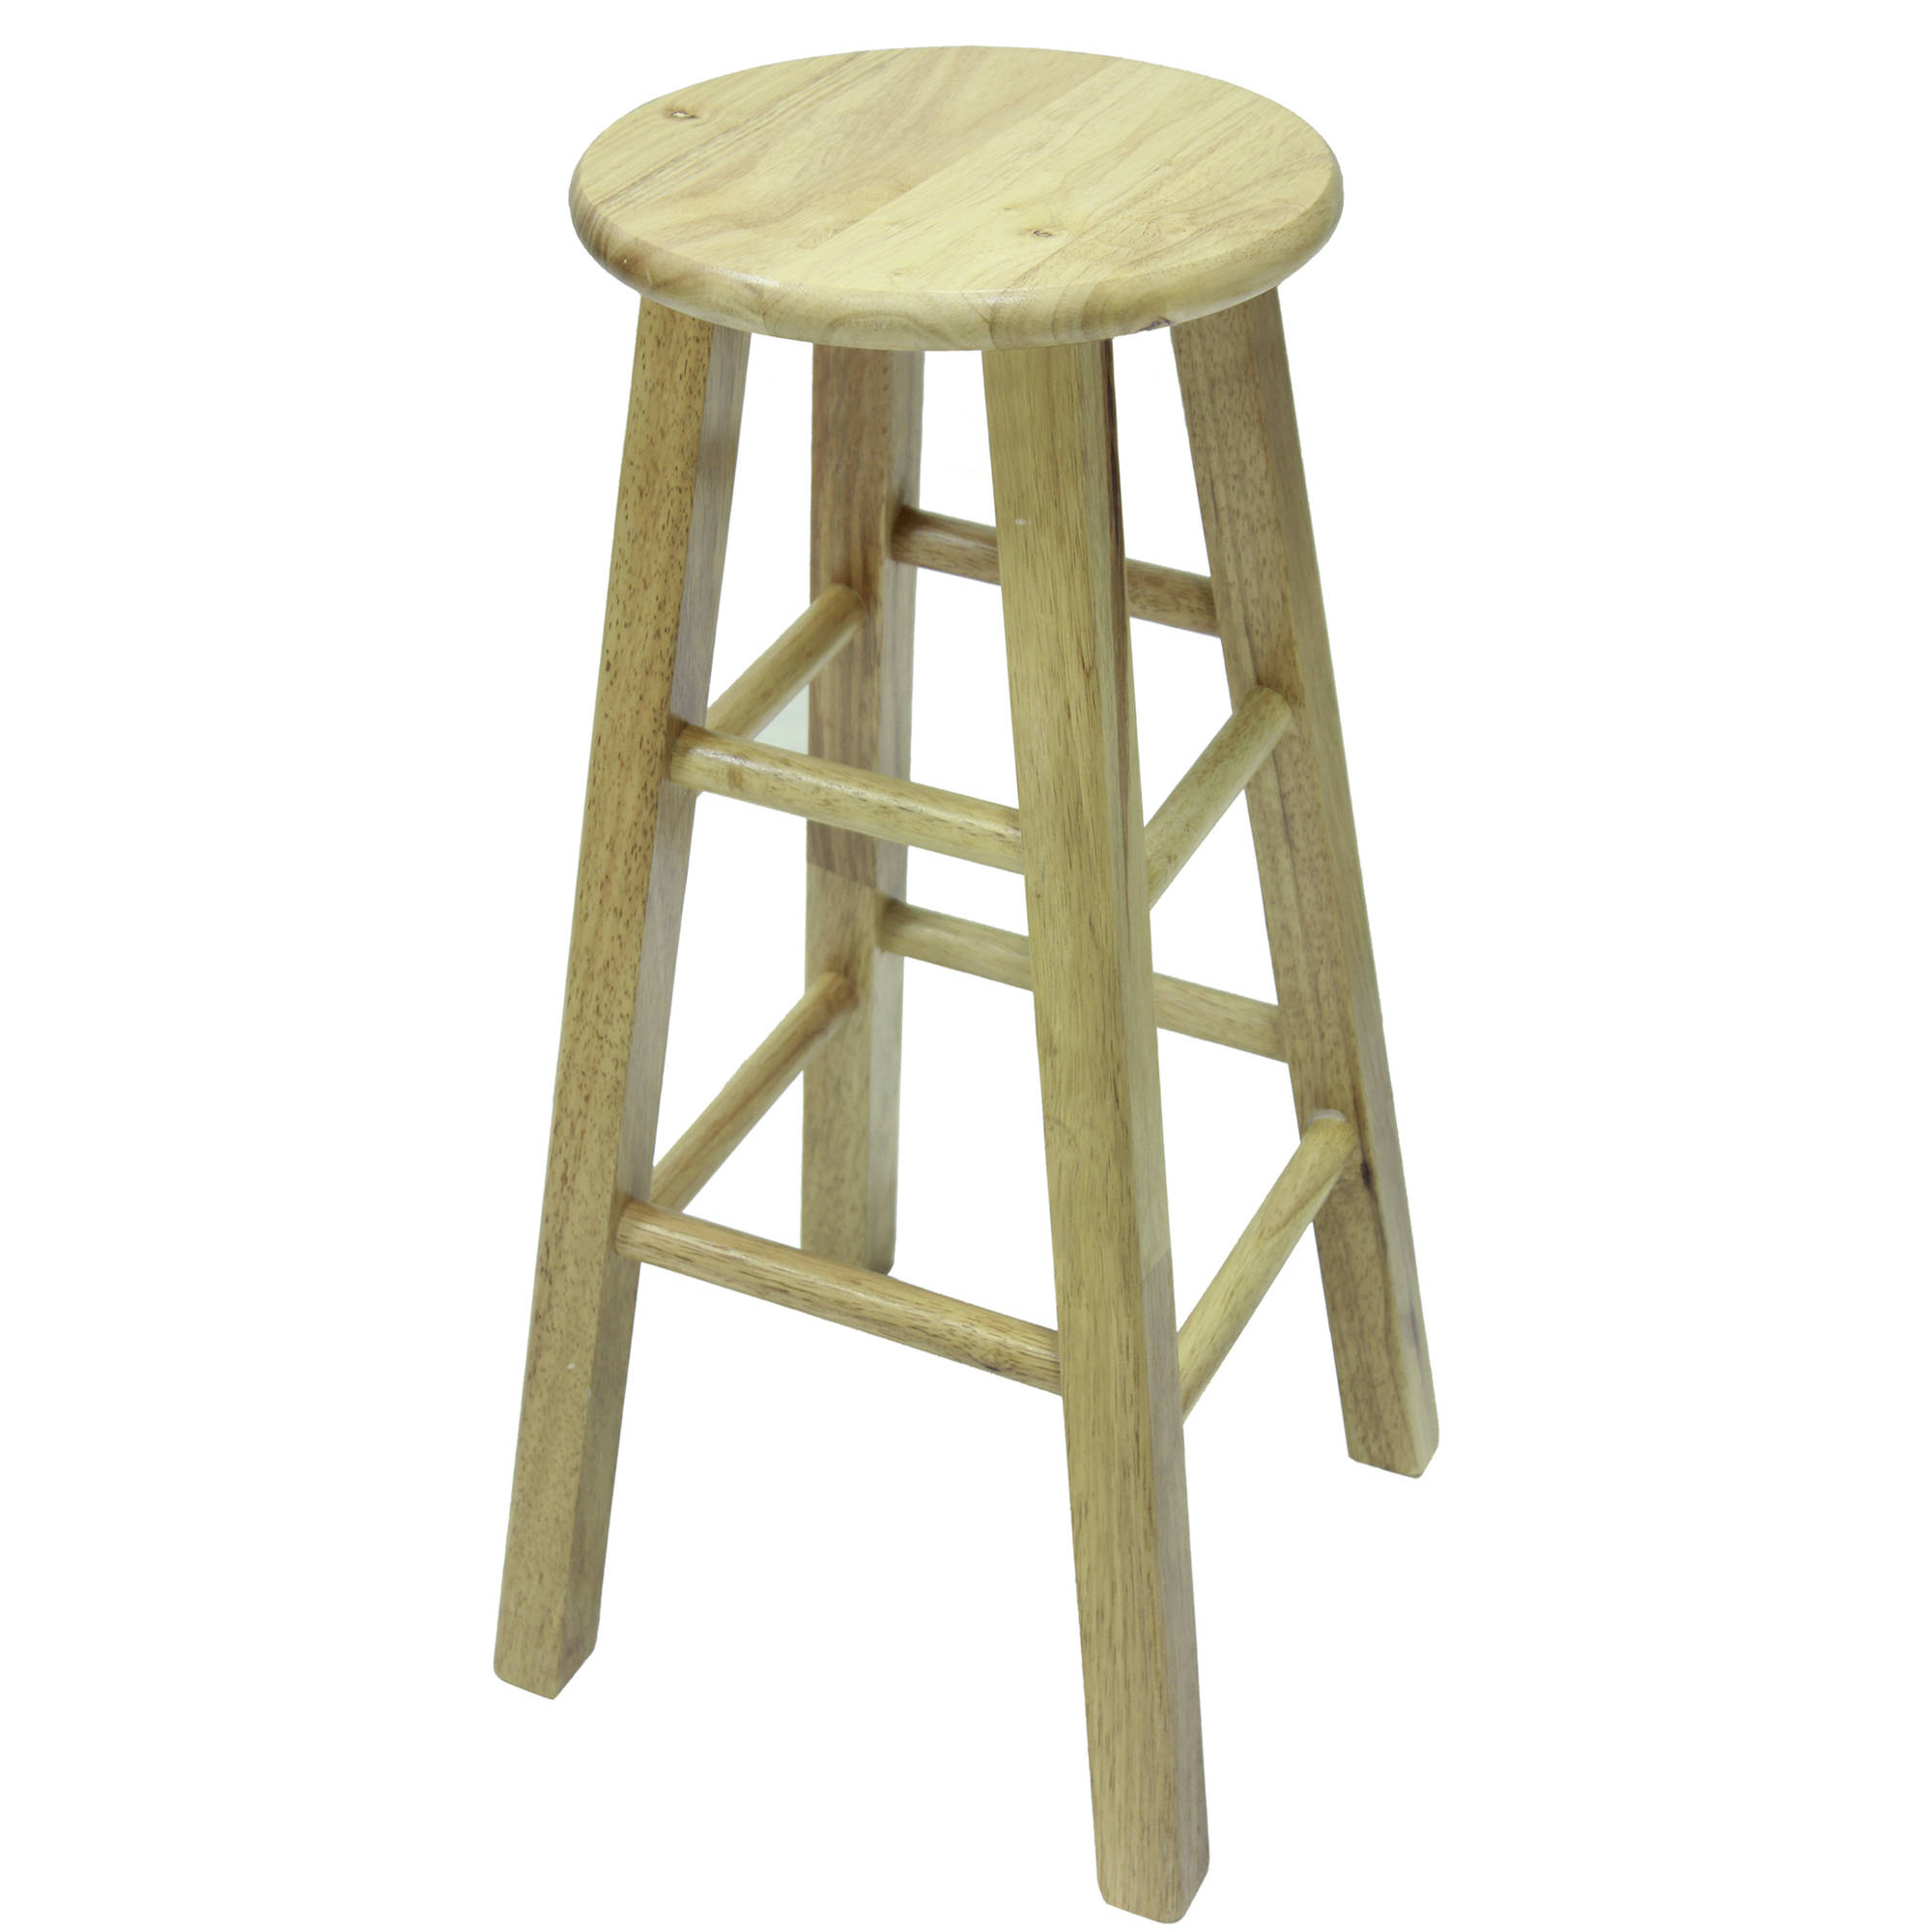 Ultimate Accents Miraval Adjustable Height Swivel Bar Stool